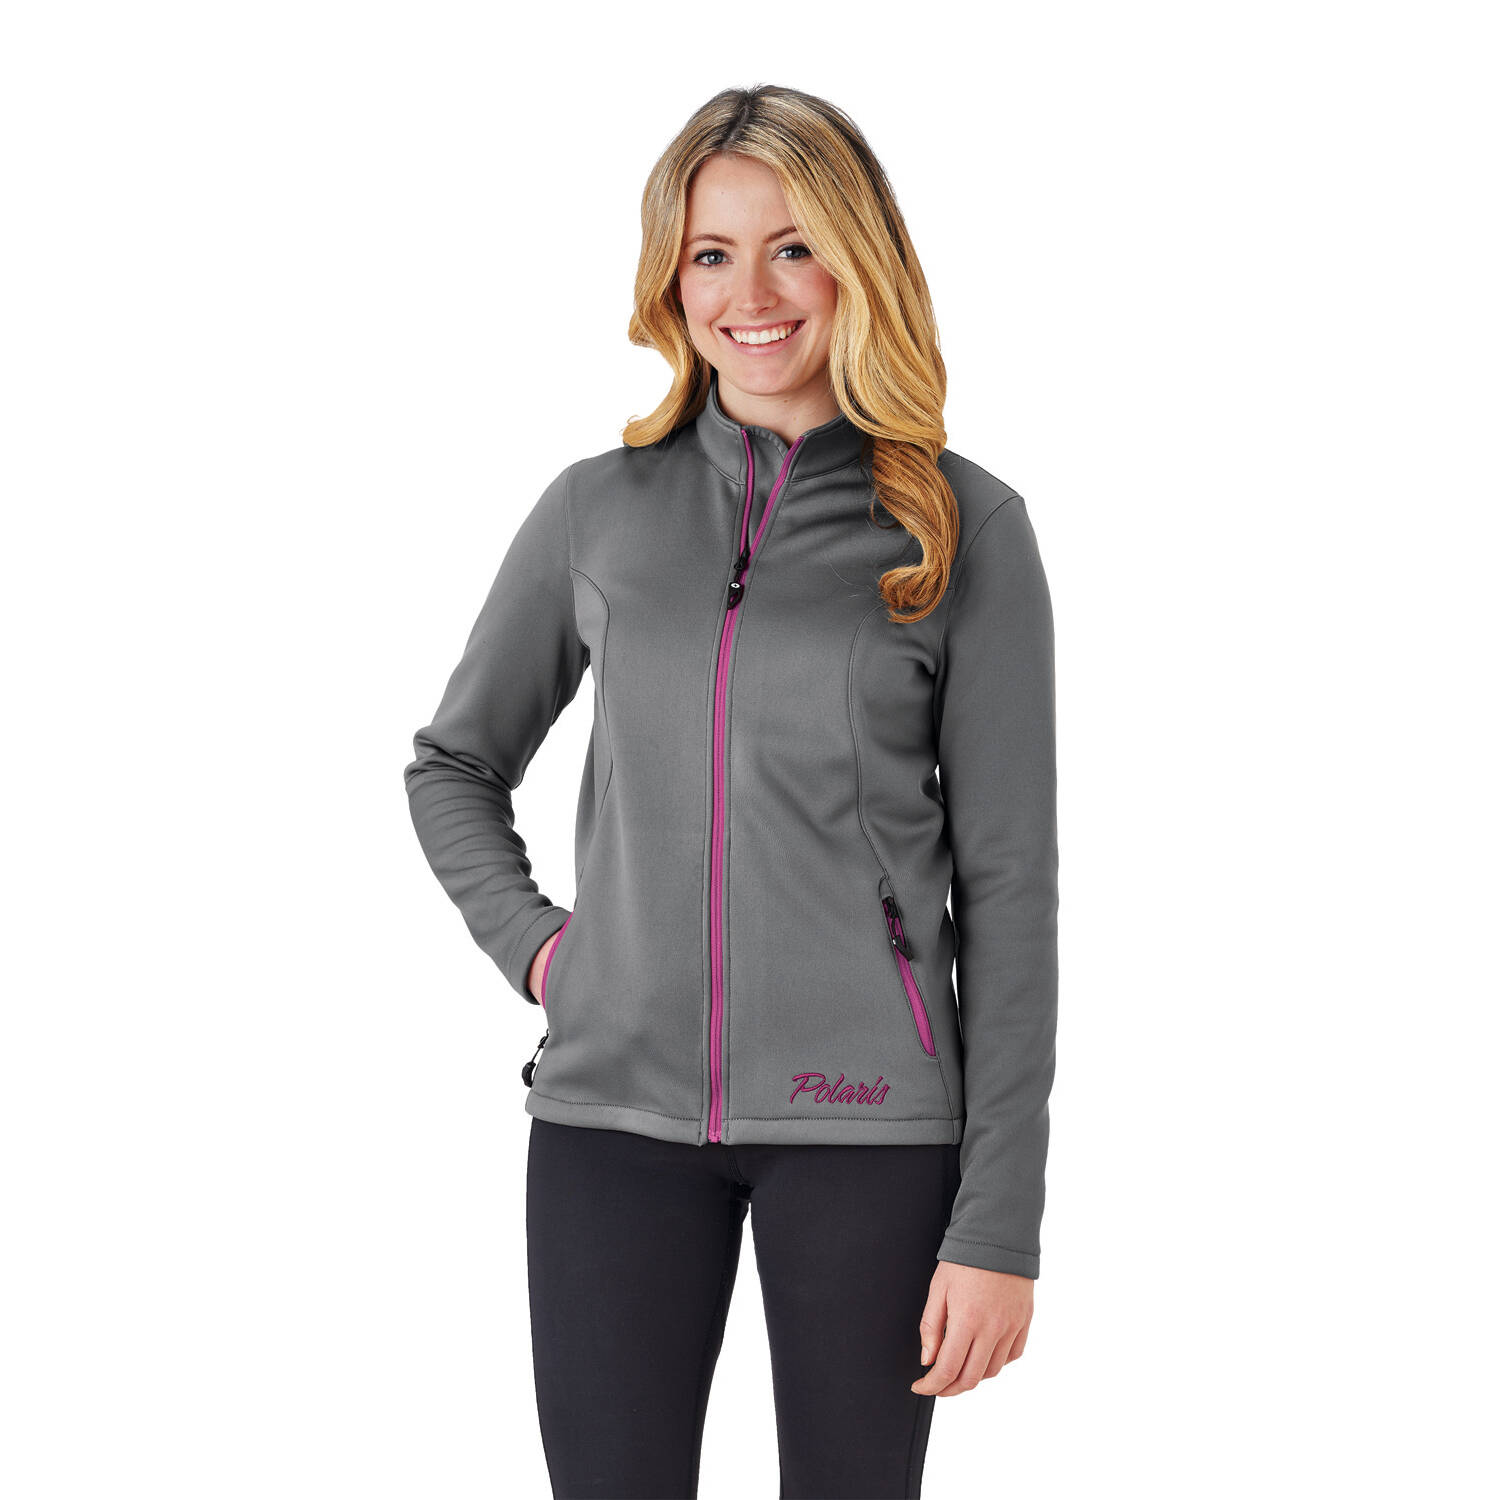 Women's Full-Zip Mid Layer Jacket with Pink Polaris® Logo, Gray